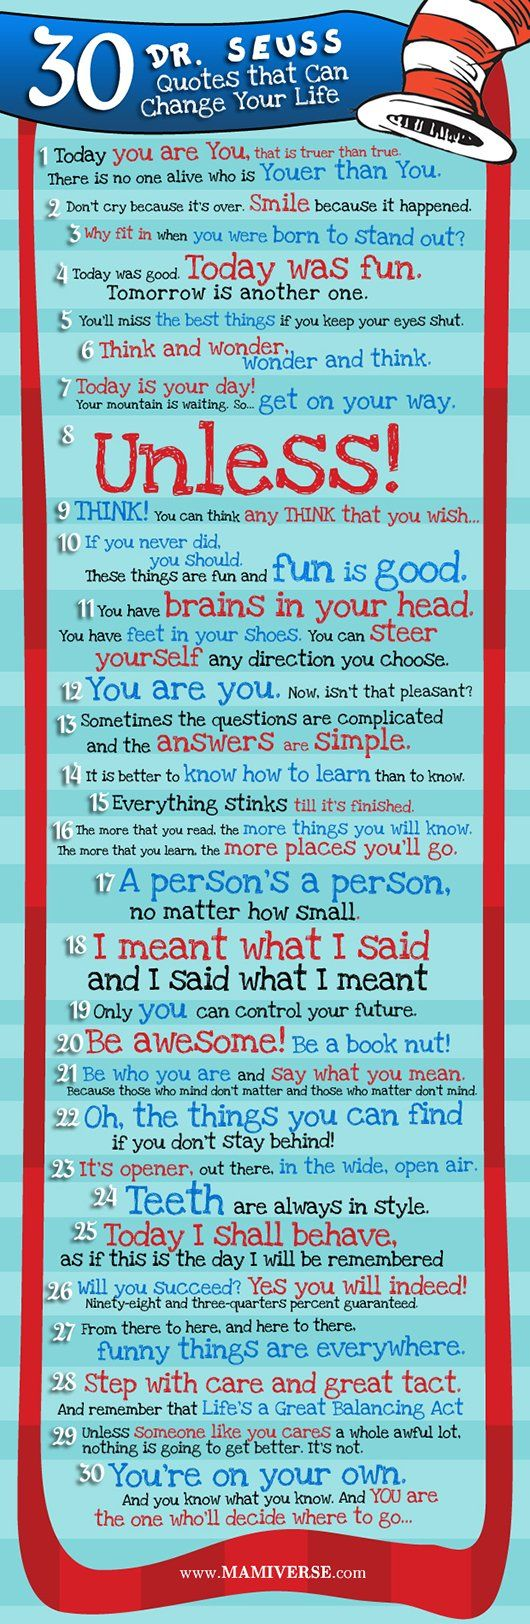 30 Positive Inspirational #Parenting #Quotes From Dr. Seuss  photo